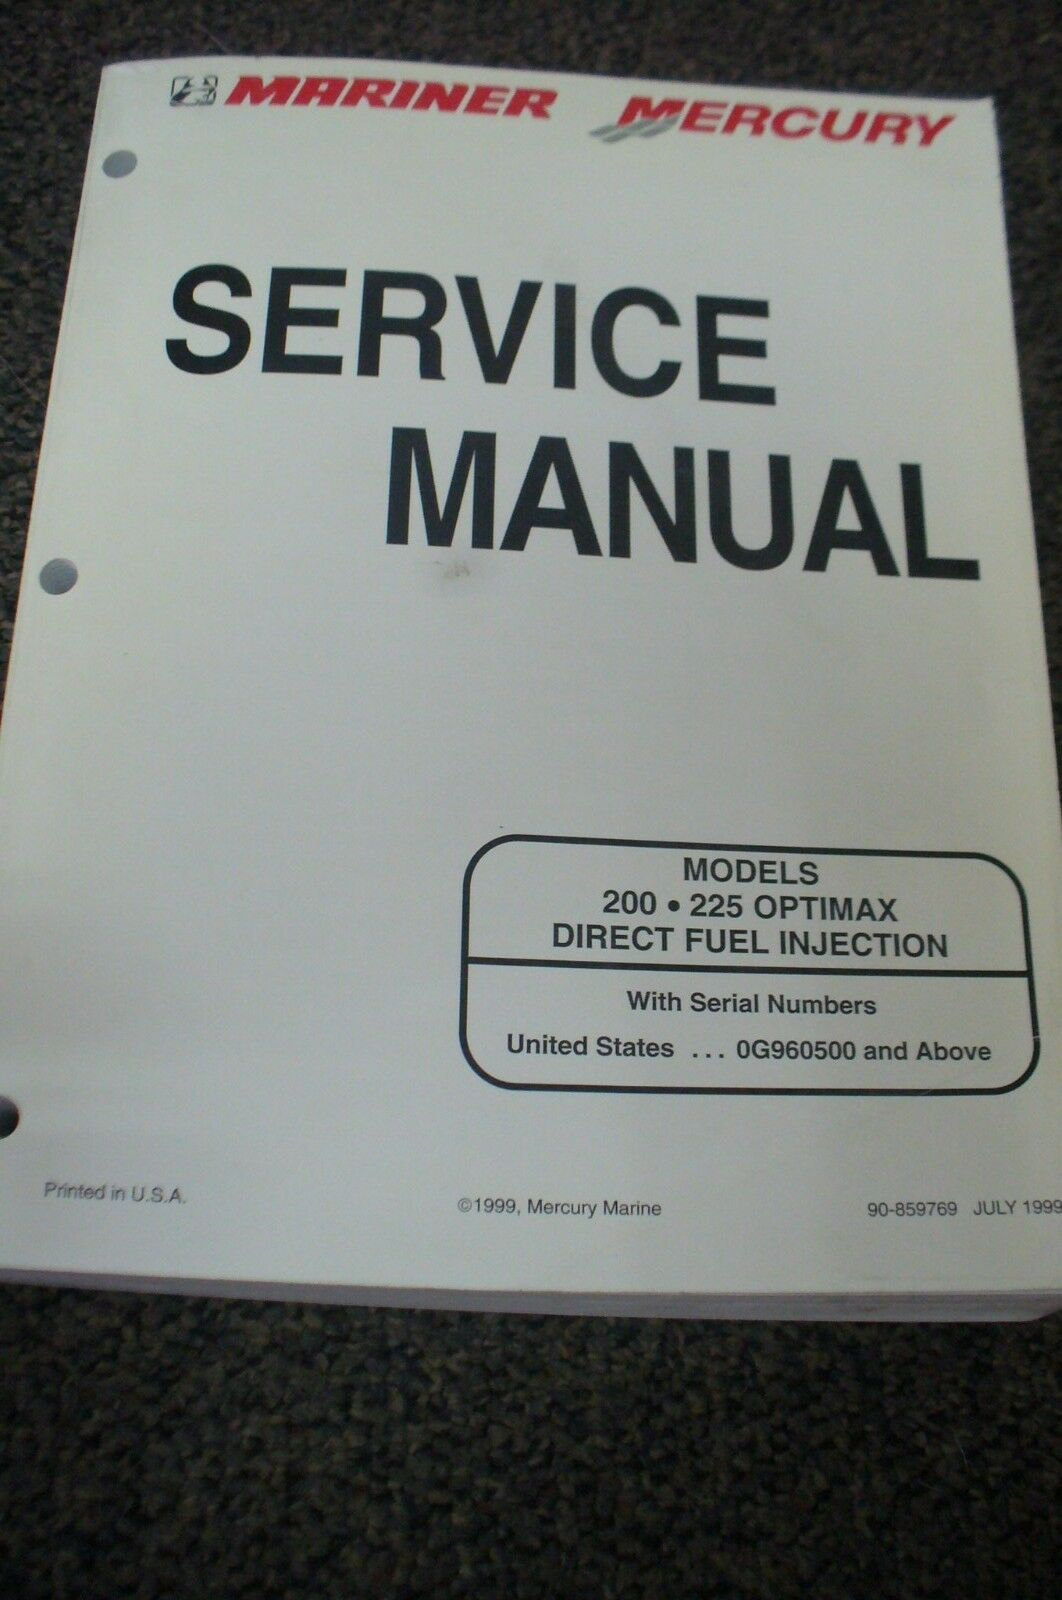 Mercury Mariner Outboard Service Manual 200 & 225 Optimax Dfi 90-859769 1  of 3Only 1 available ...